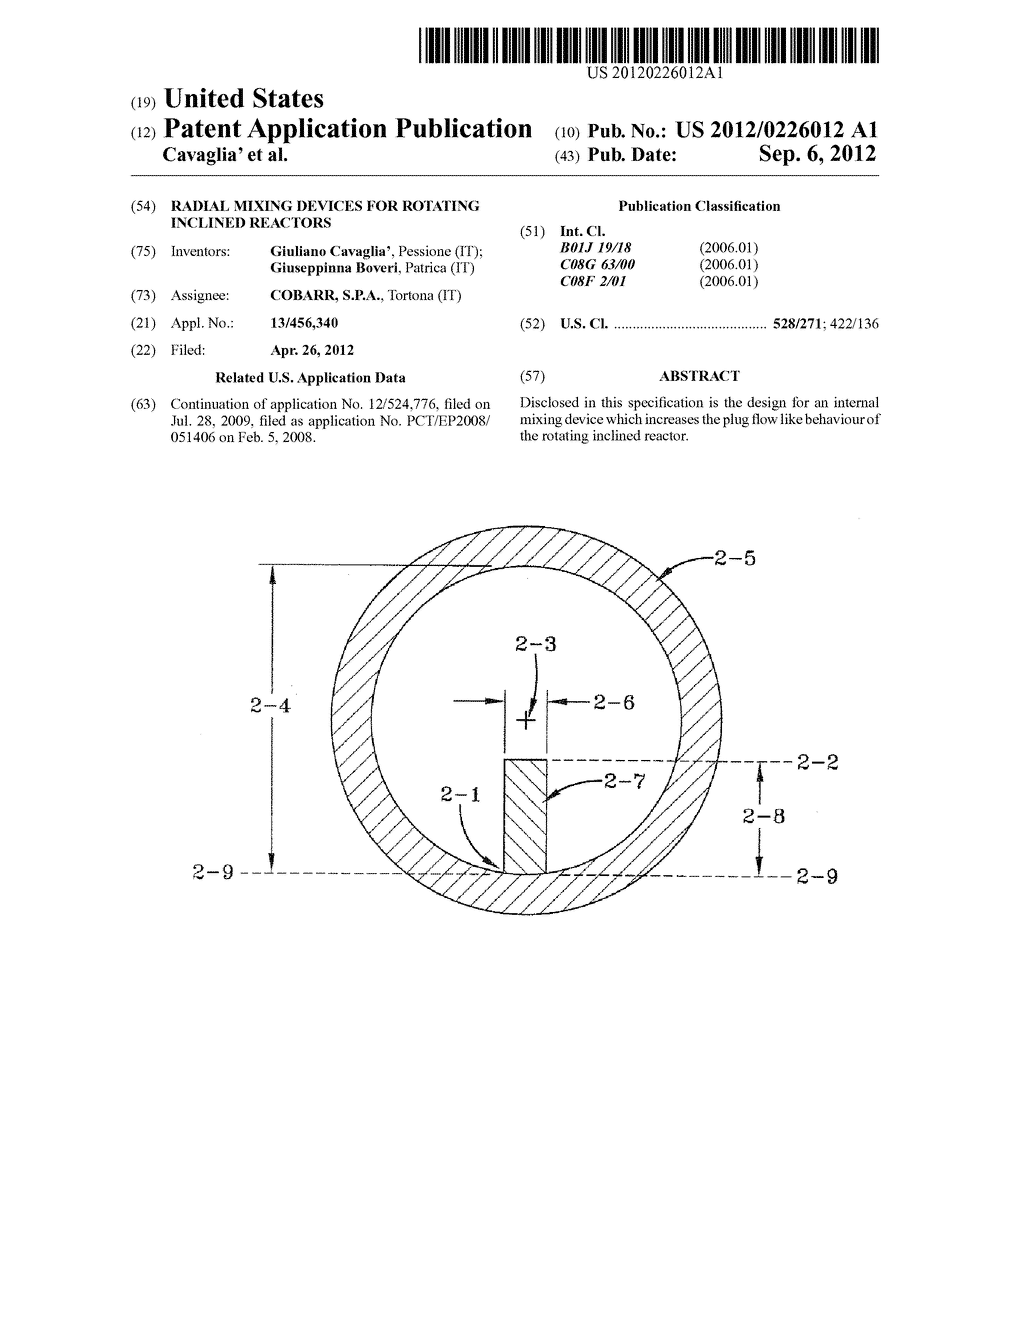 Radial Mixing Devices for Rotating Inclined Reactors - diagram, schematic, and image 01